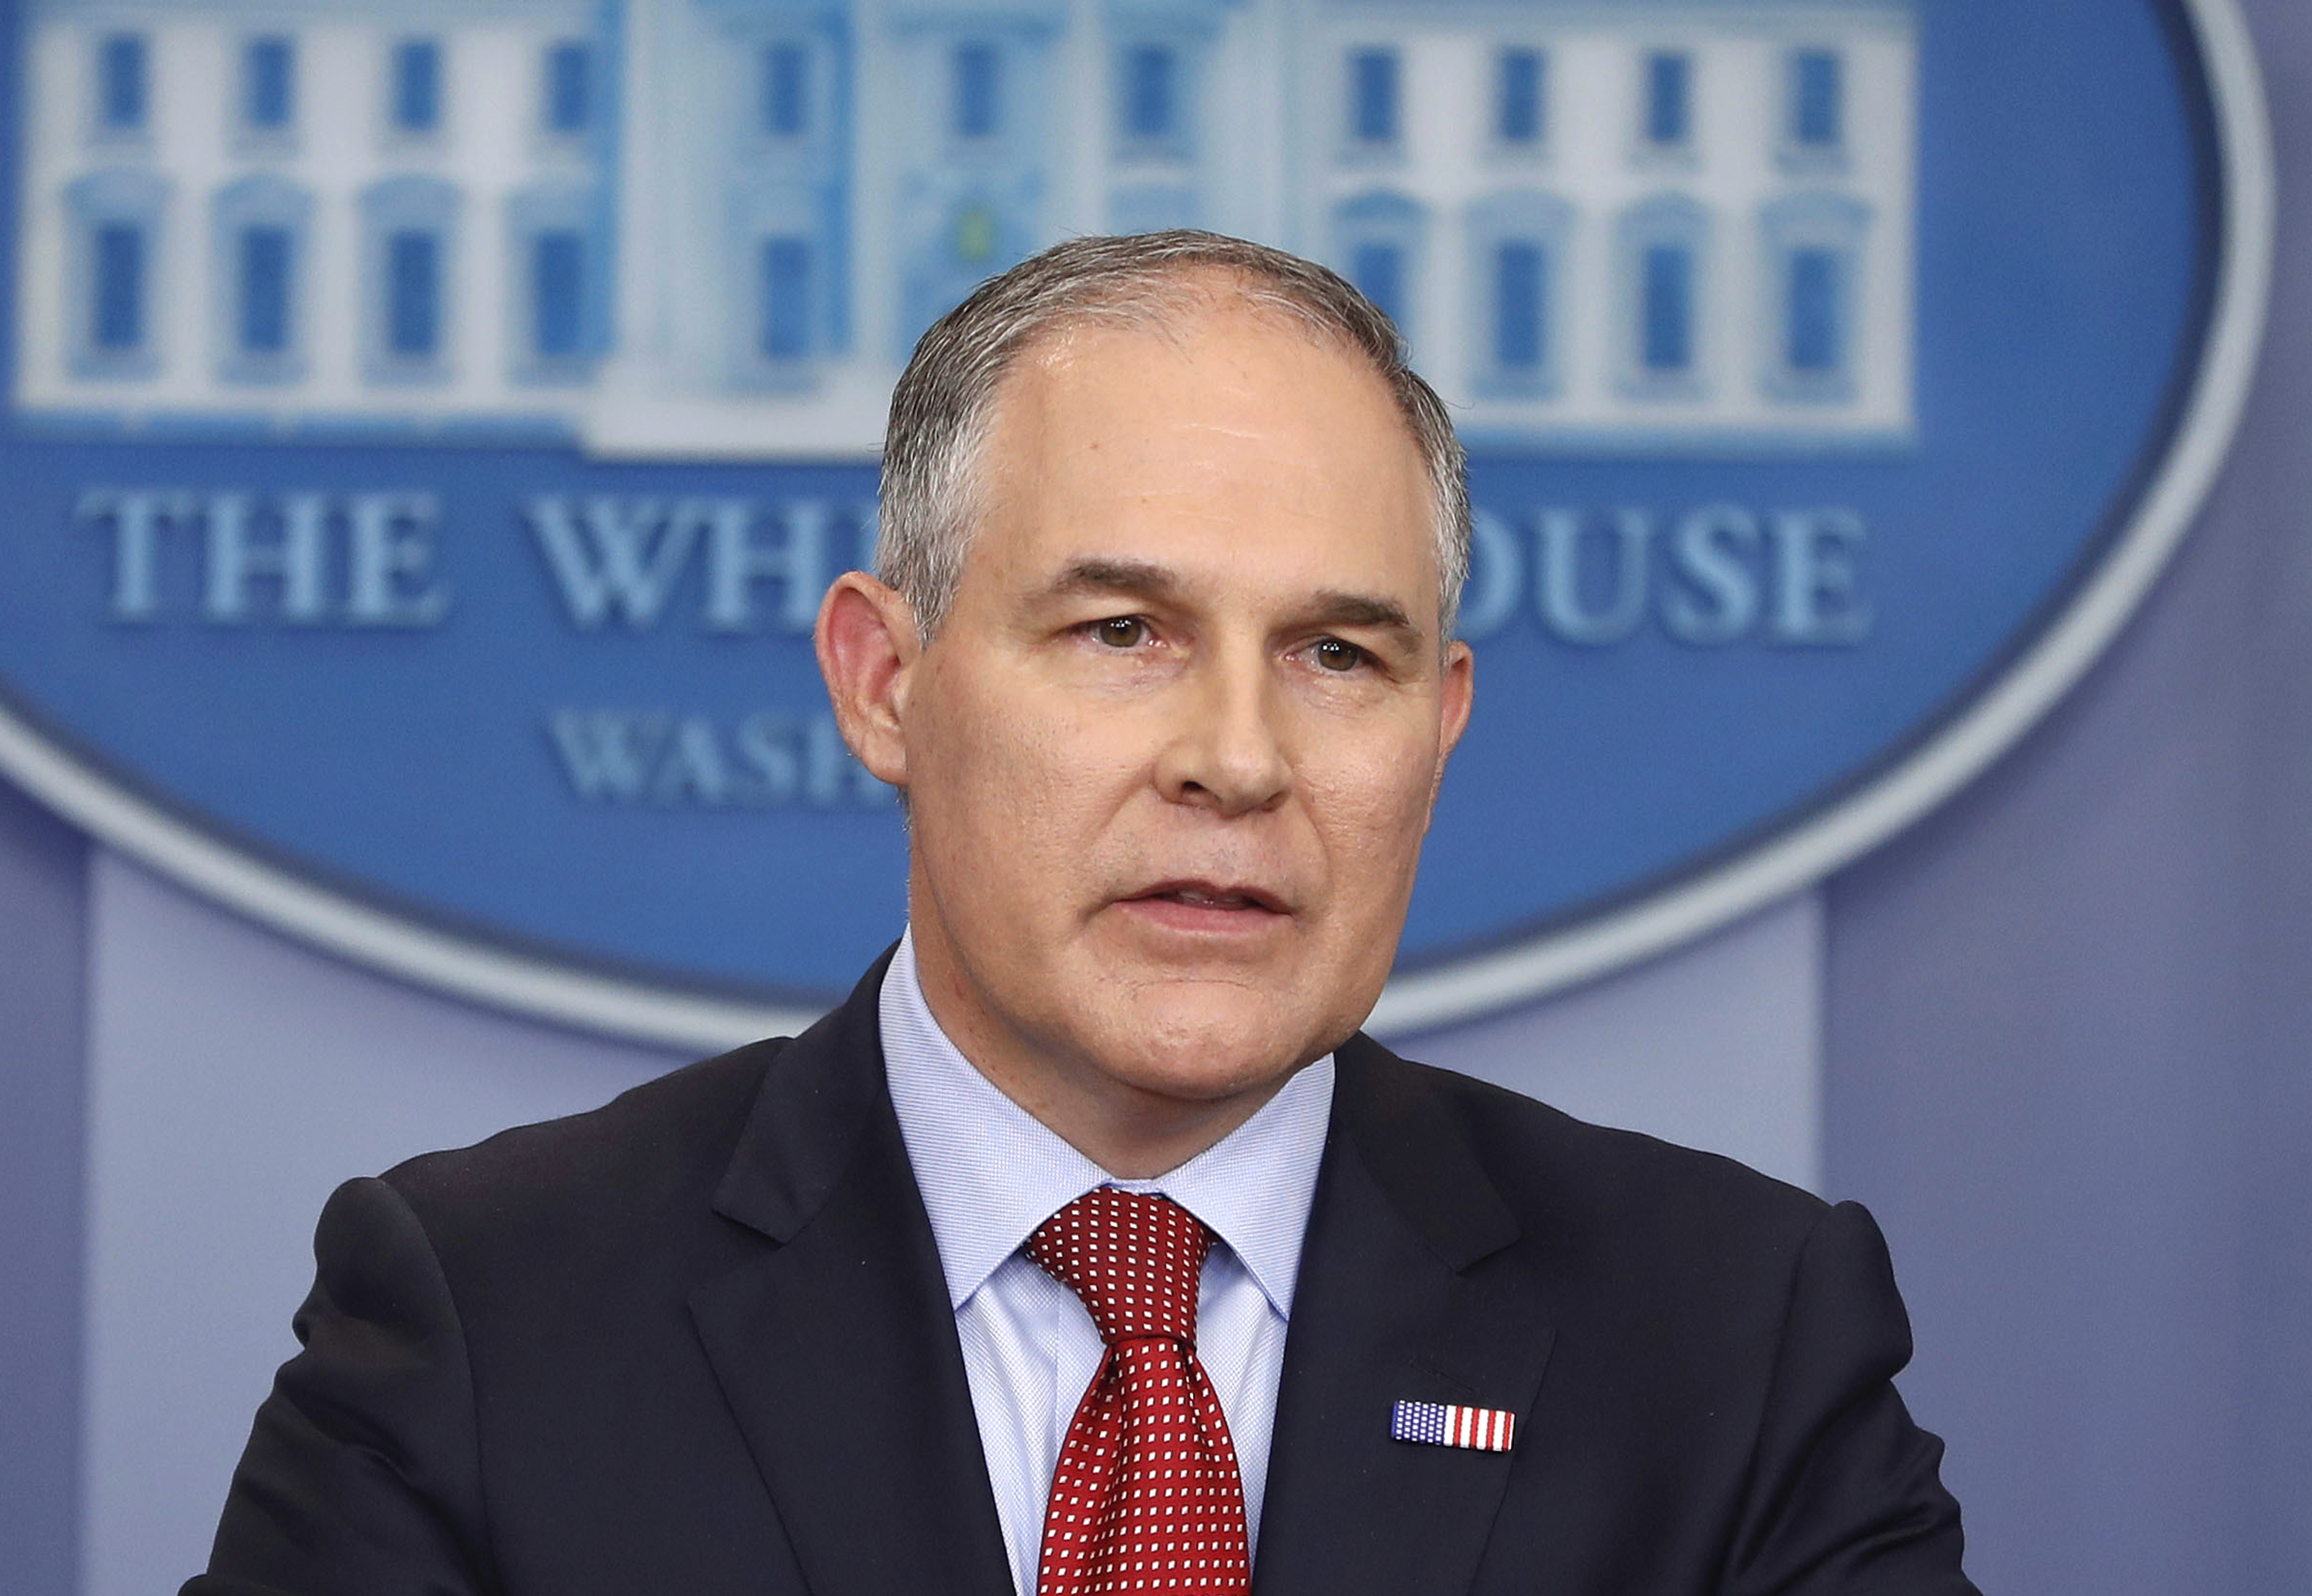 WEB Trump Climate Plan In this June 2, 2017, file photo, EPA Administrator Scott Pruitt speaks in the Brady Press Briefing Room of the White House in Washington.